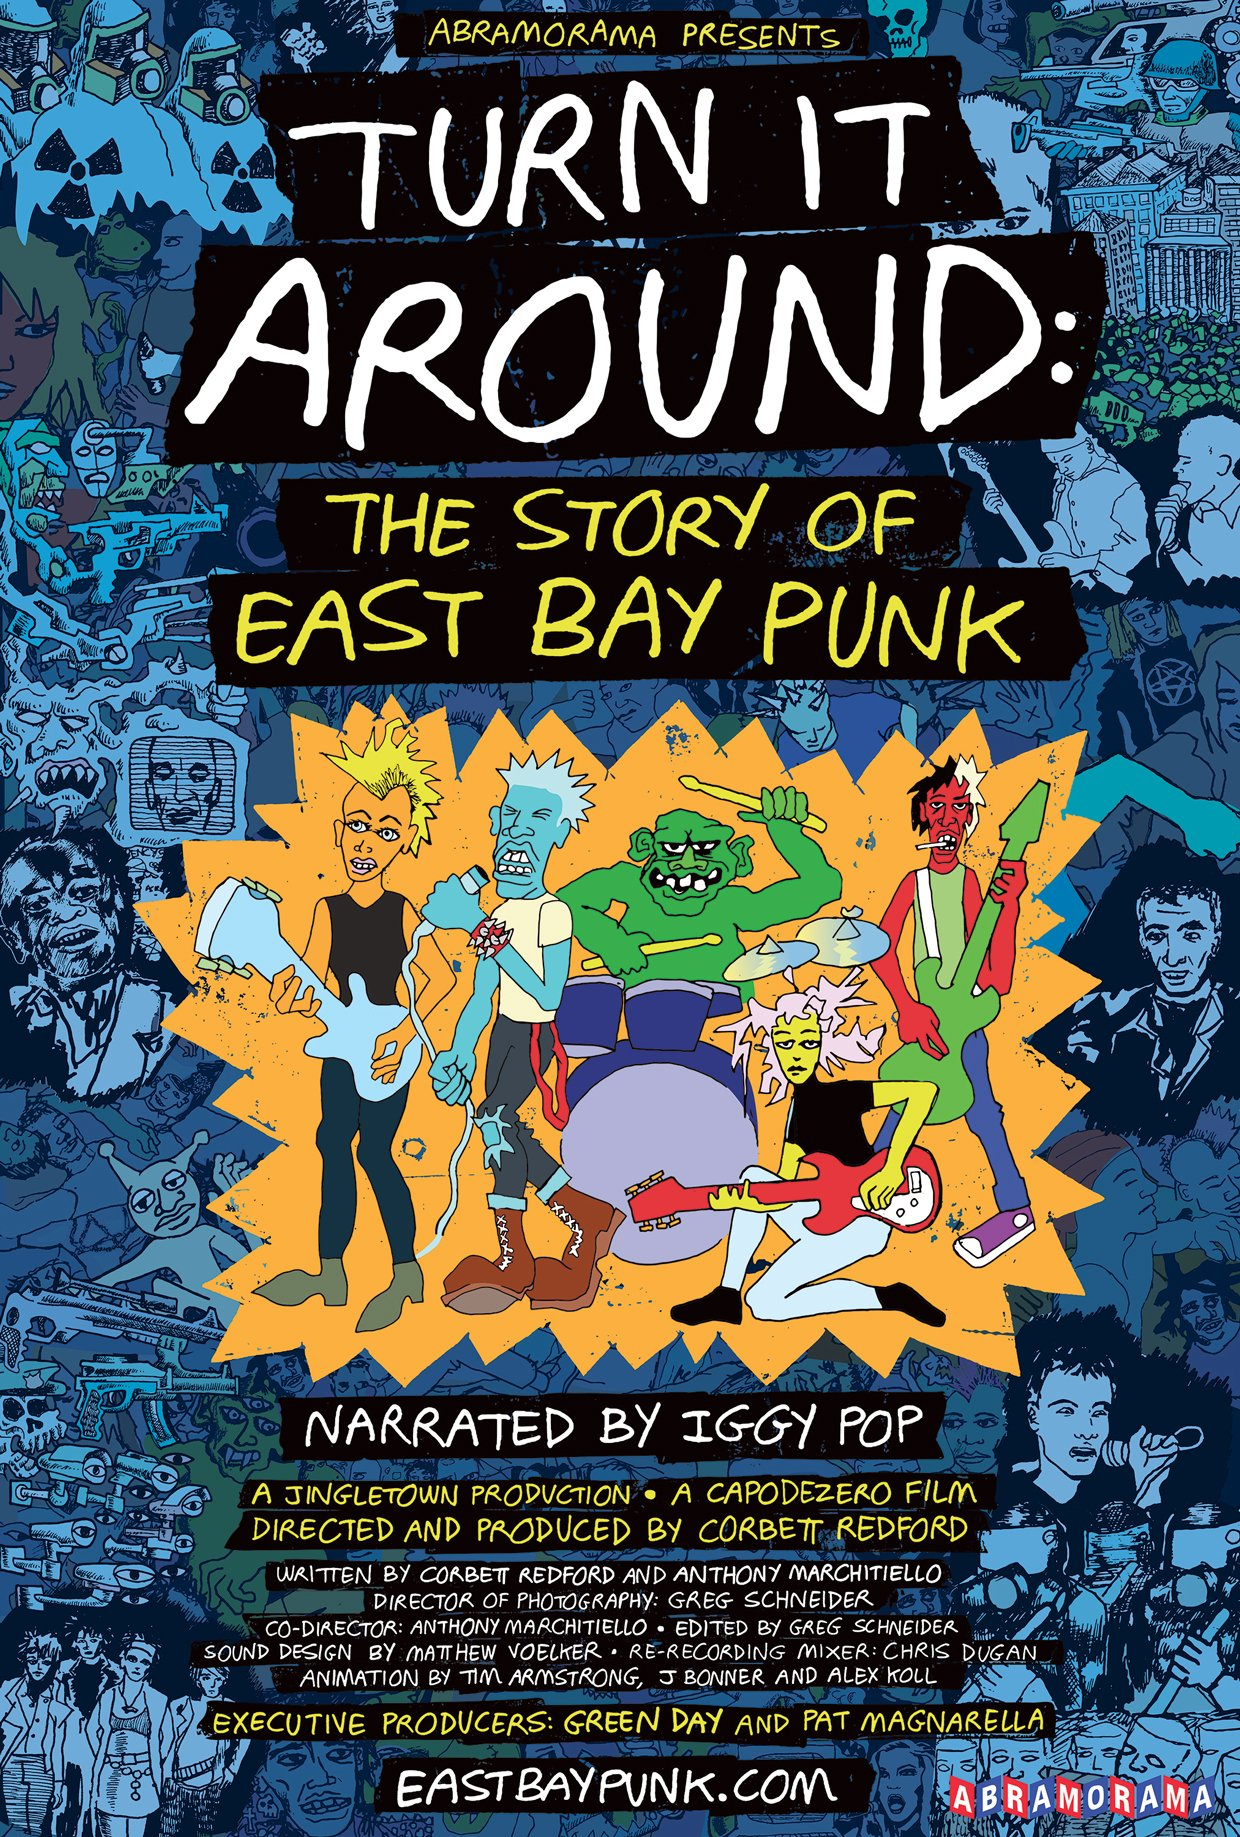 NATIONAL THEATRICAL TOUR FOR  TURN IT AROUND: THE STORY OF EAST BAY PUNK  https://t.co/ZTuh4h7RuE https://t.co/ShJlmbdblv